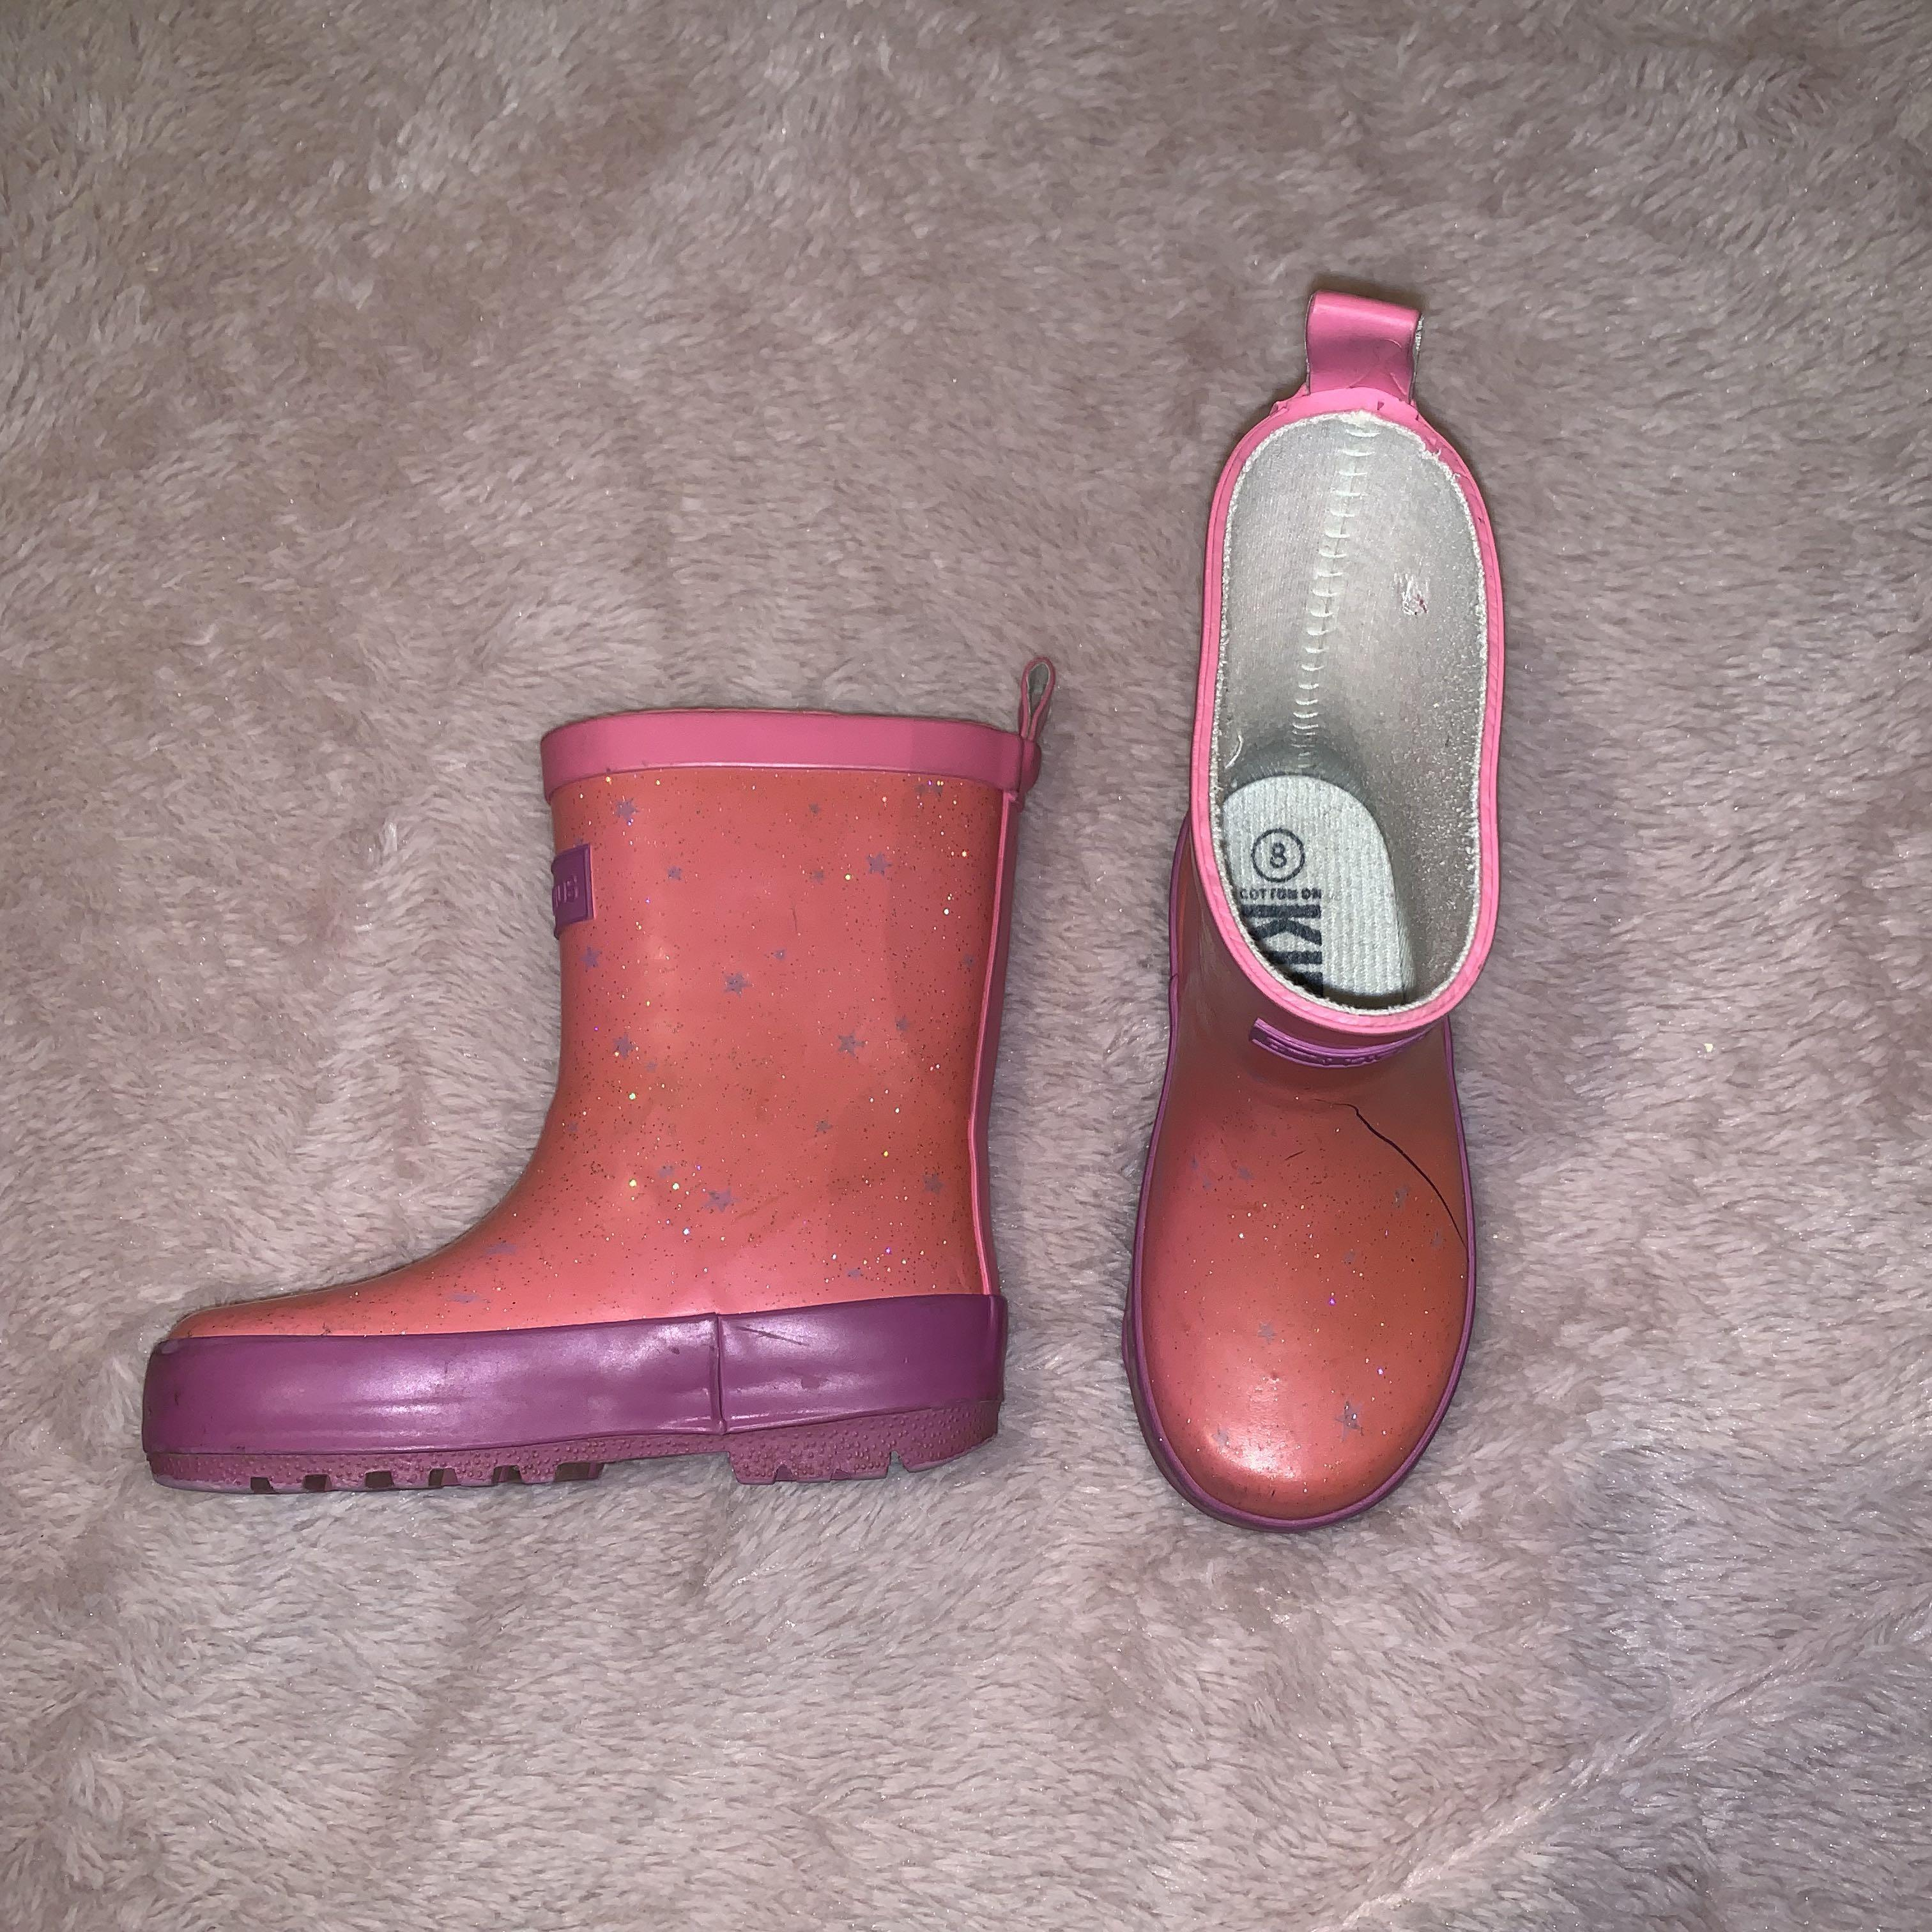 Size 8 gumboots